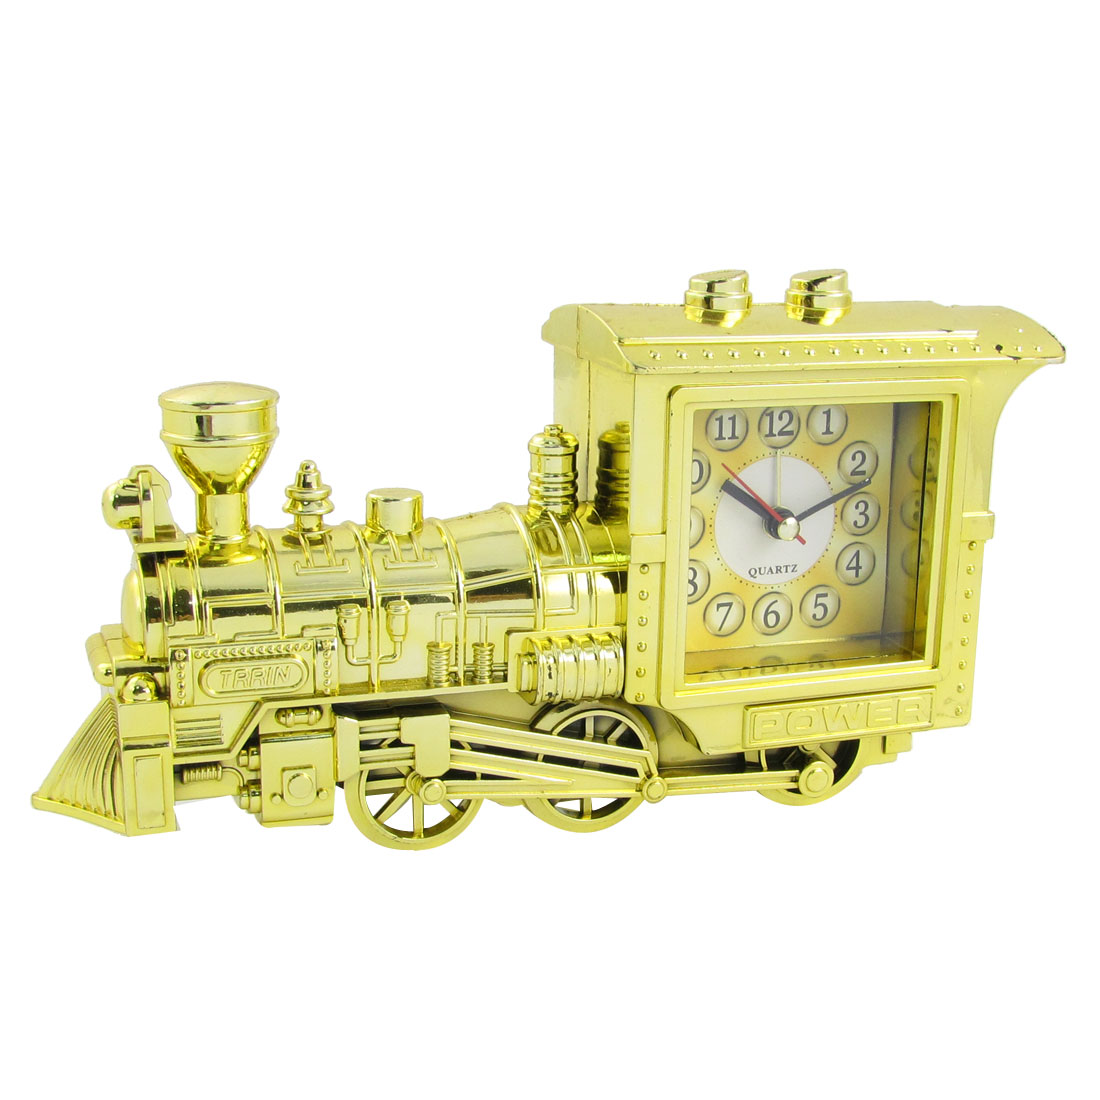 Gold Tone Locomotive Engine Shaped Plastic Clockwork Alarm Timer Clock